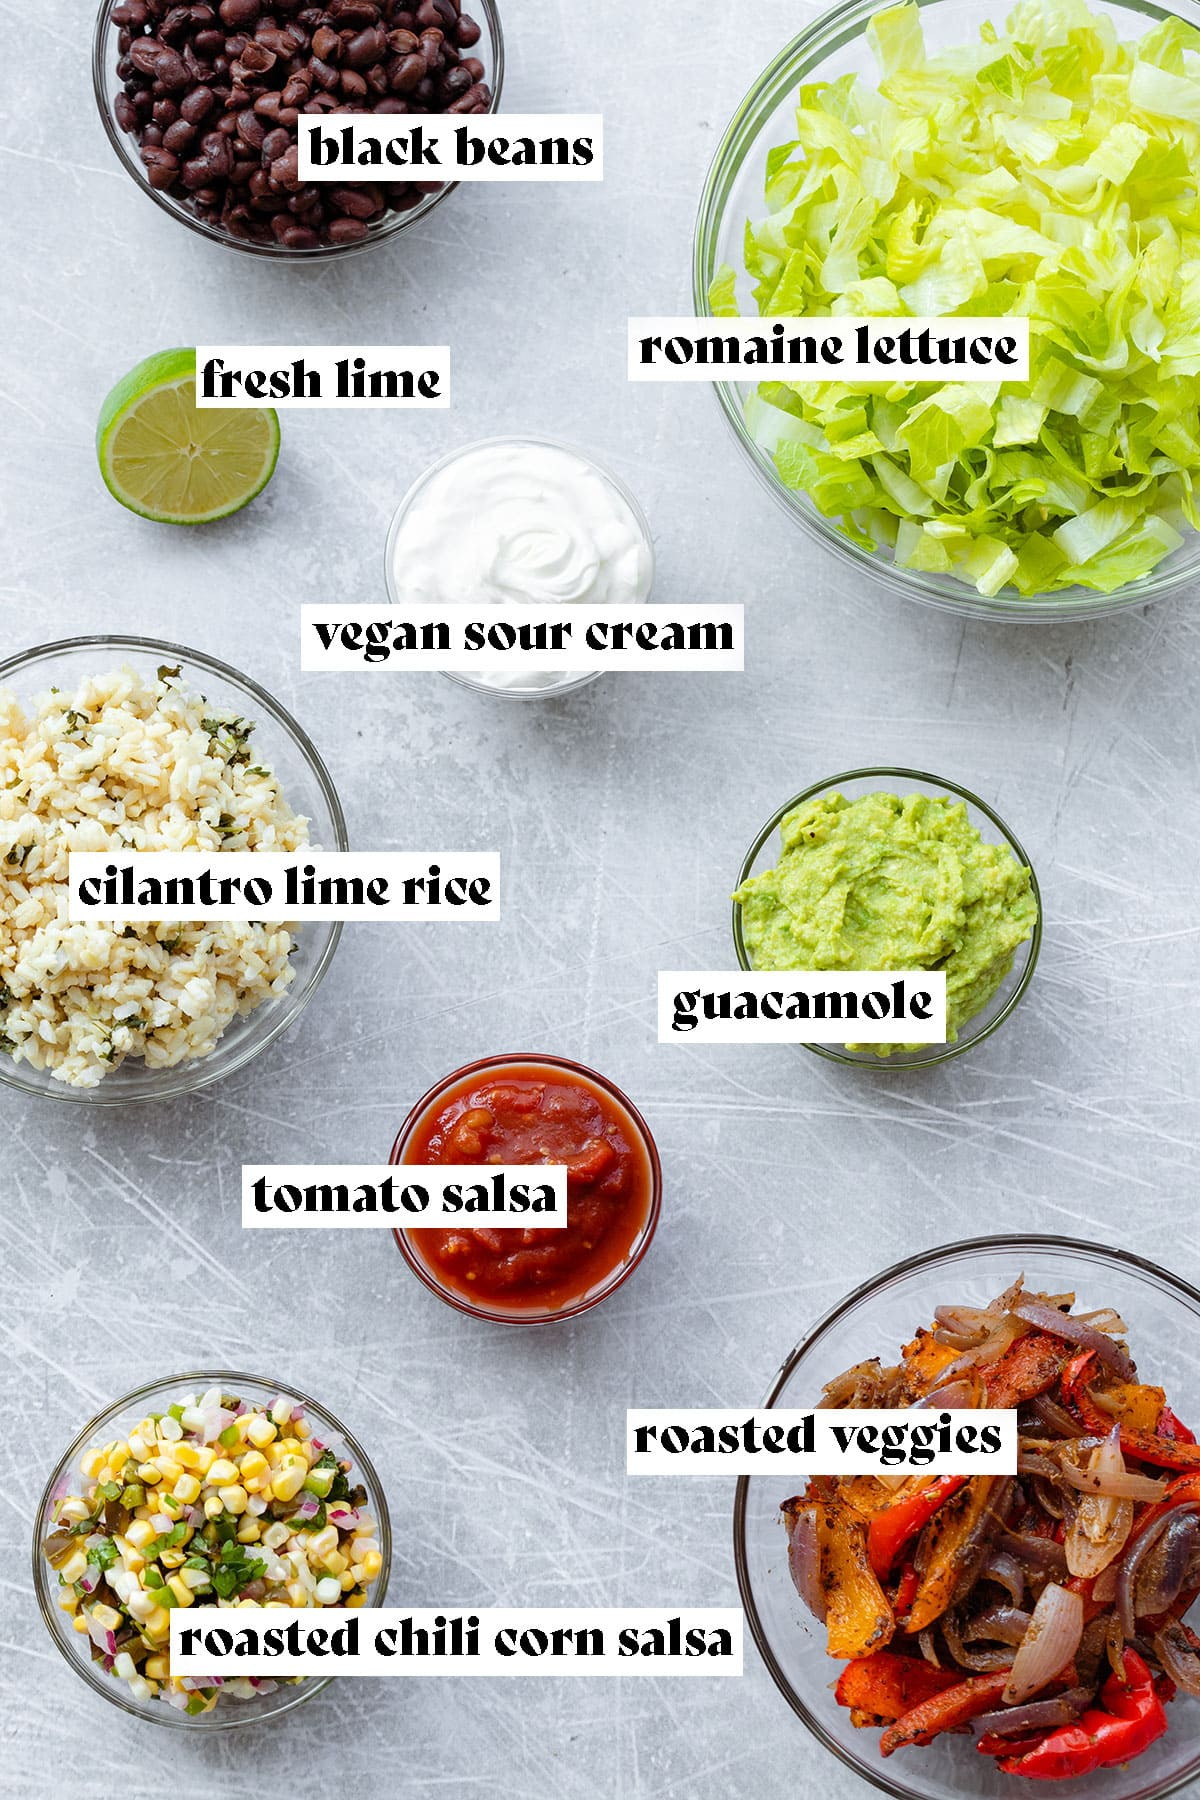 Ingredients in glass bowls on a steel background. Romaine lettuce, black beans, vegan sour cream, guacamole, cilantro lime rice, tomato salsa, roasted chili corn salsa, and roasted veggies.